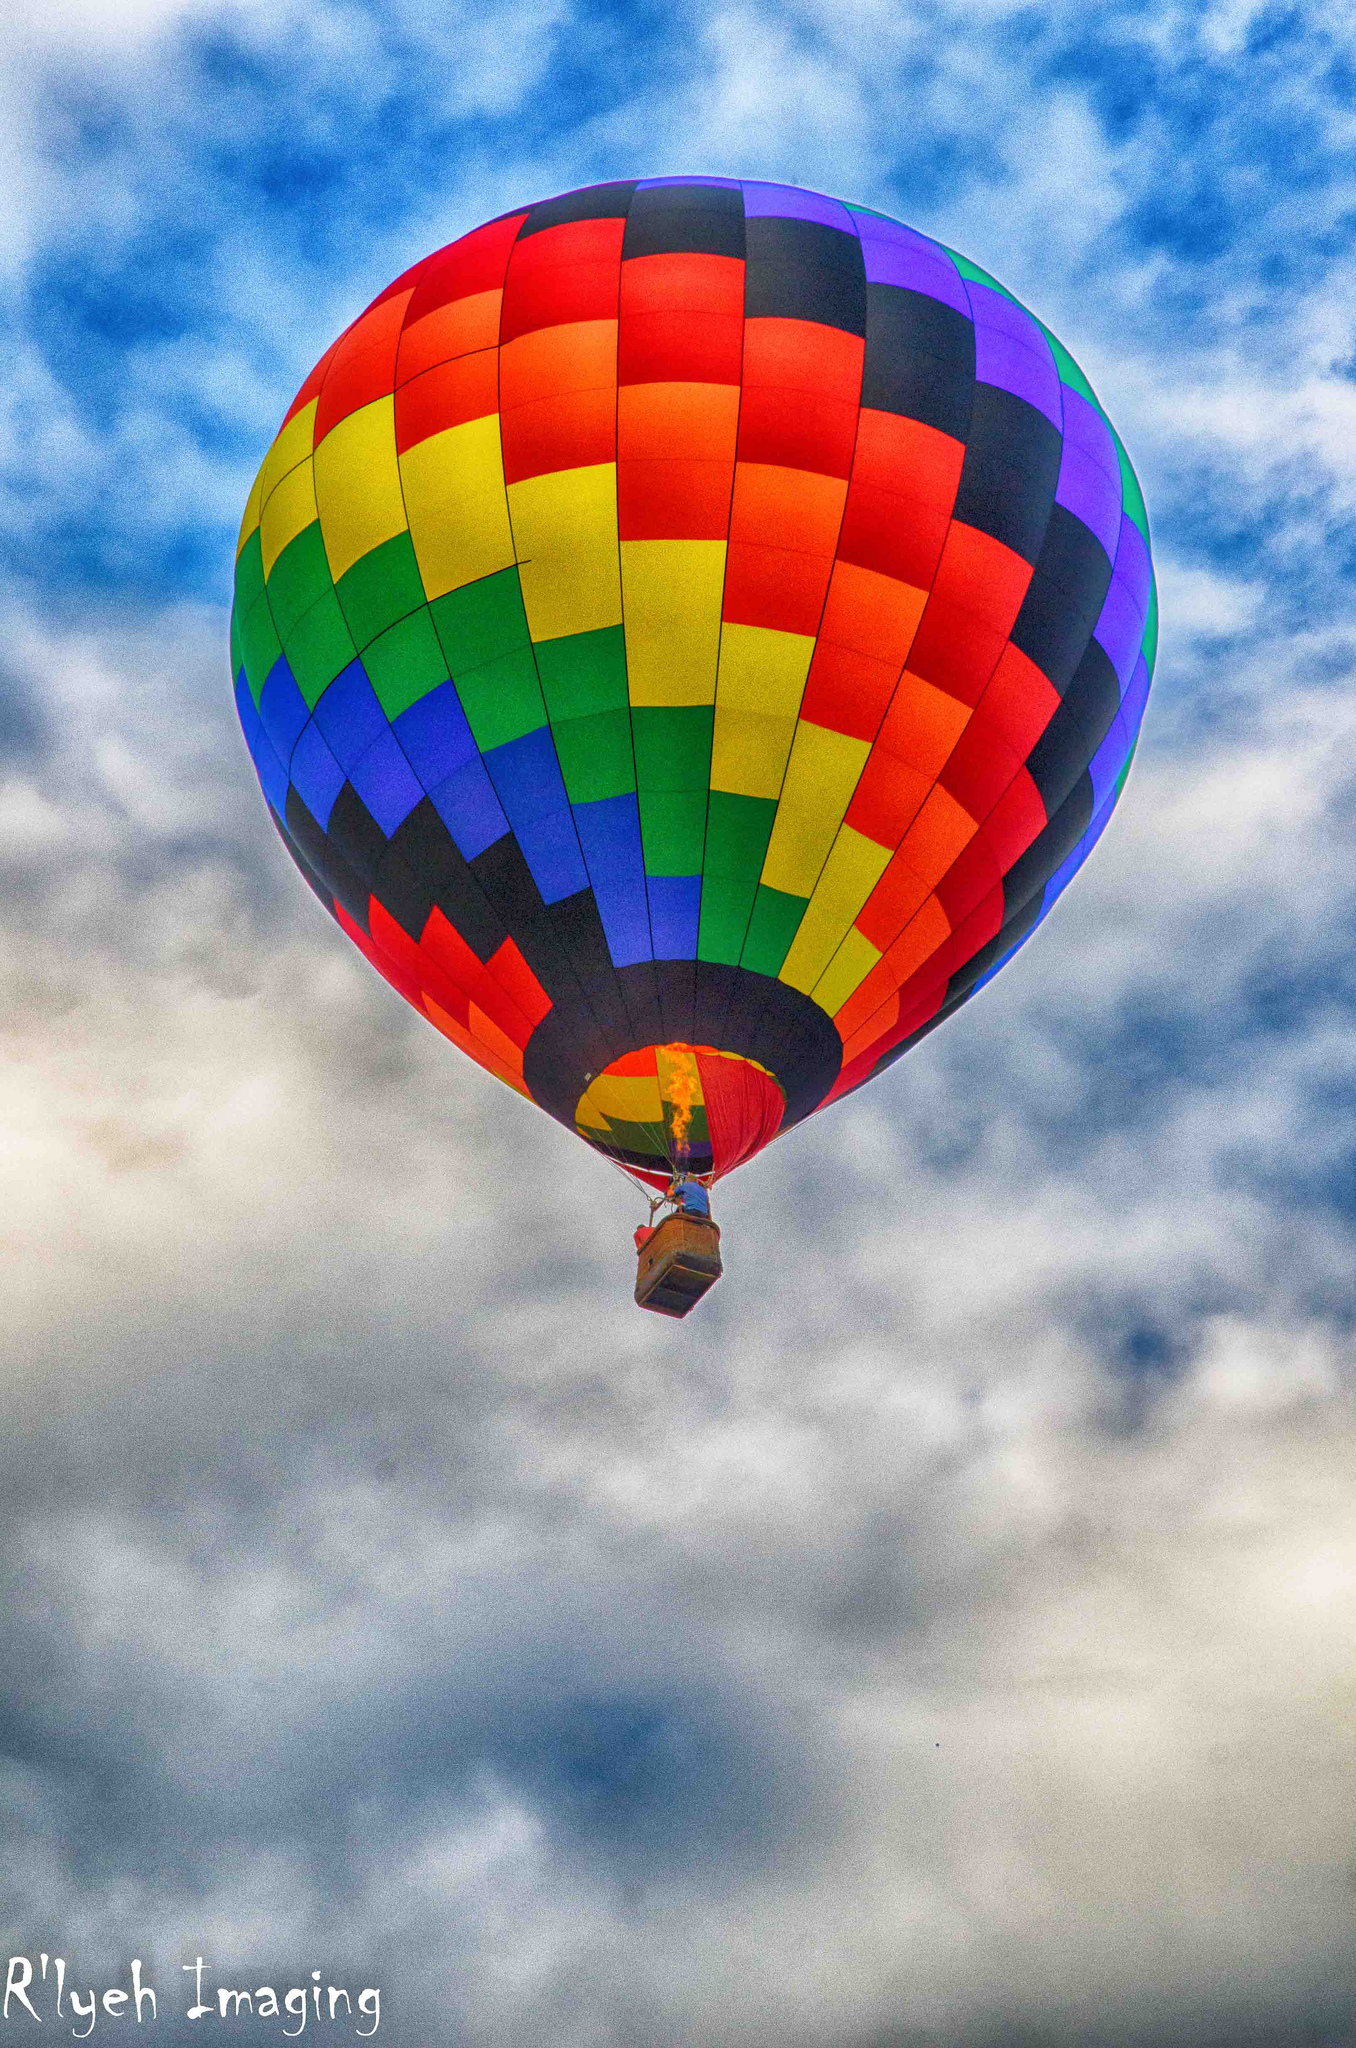 Hot Air Balloon by R'lyeh Imaging on flickr